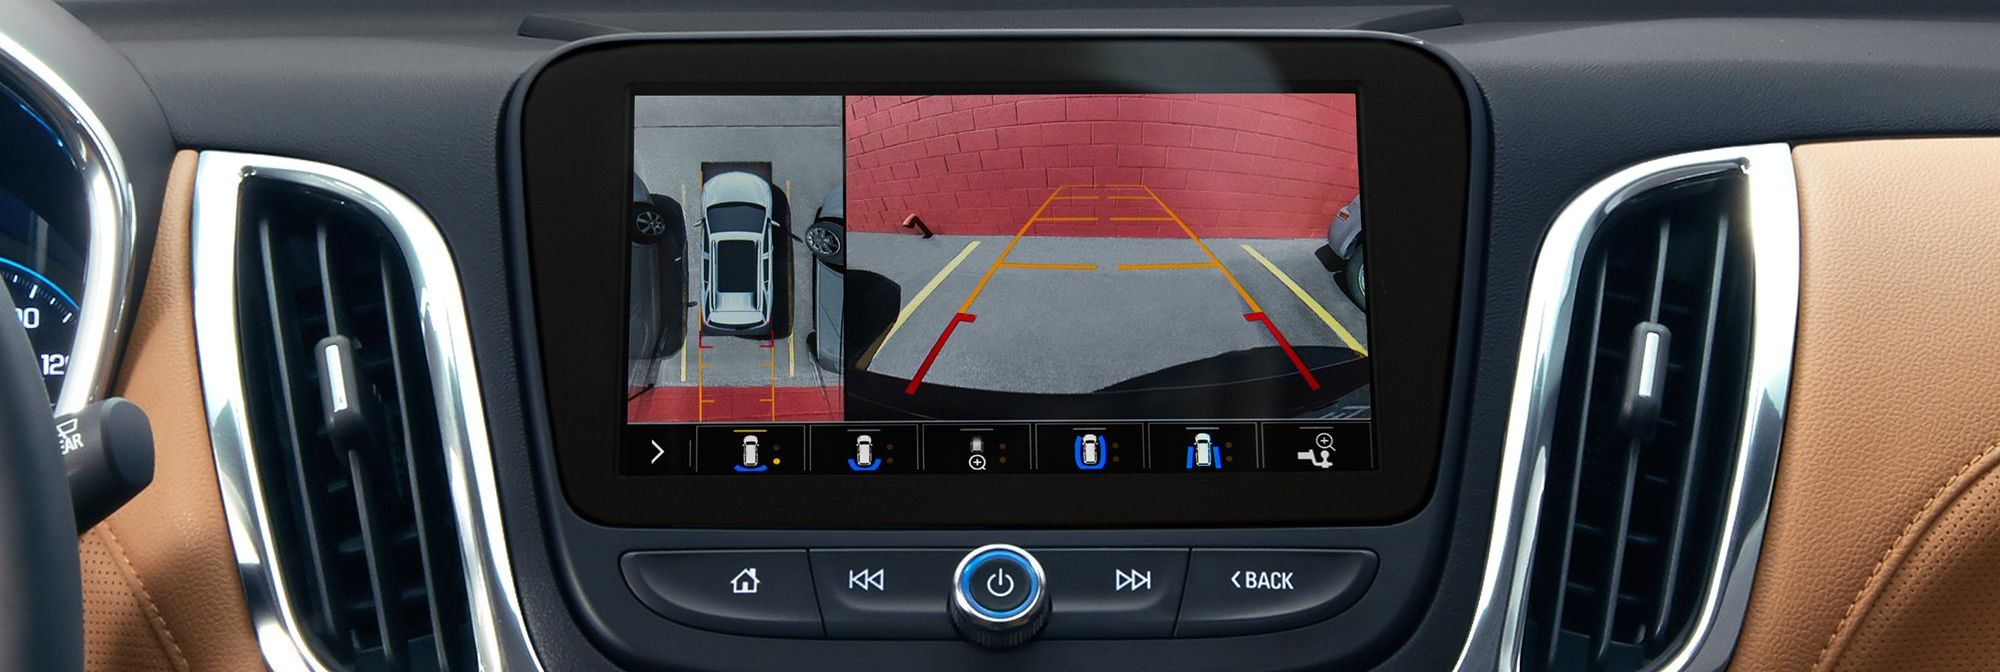 Rear Vision Camera in the 2019 Equinox